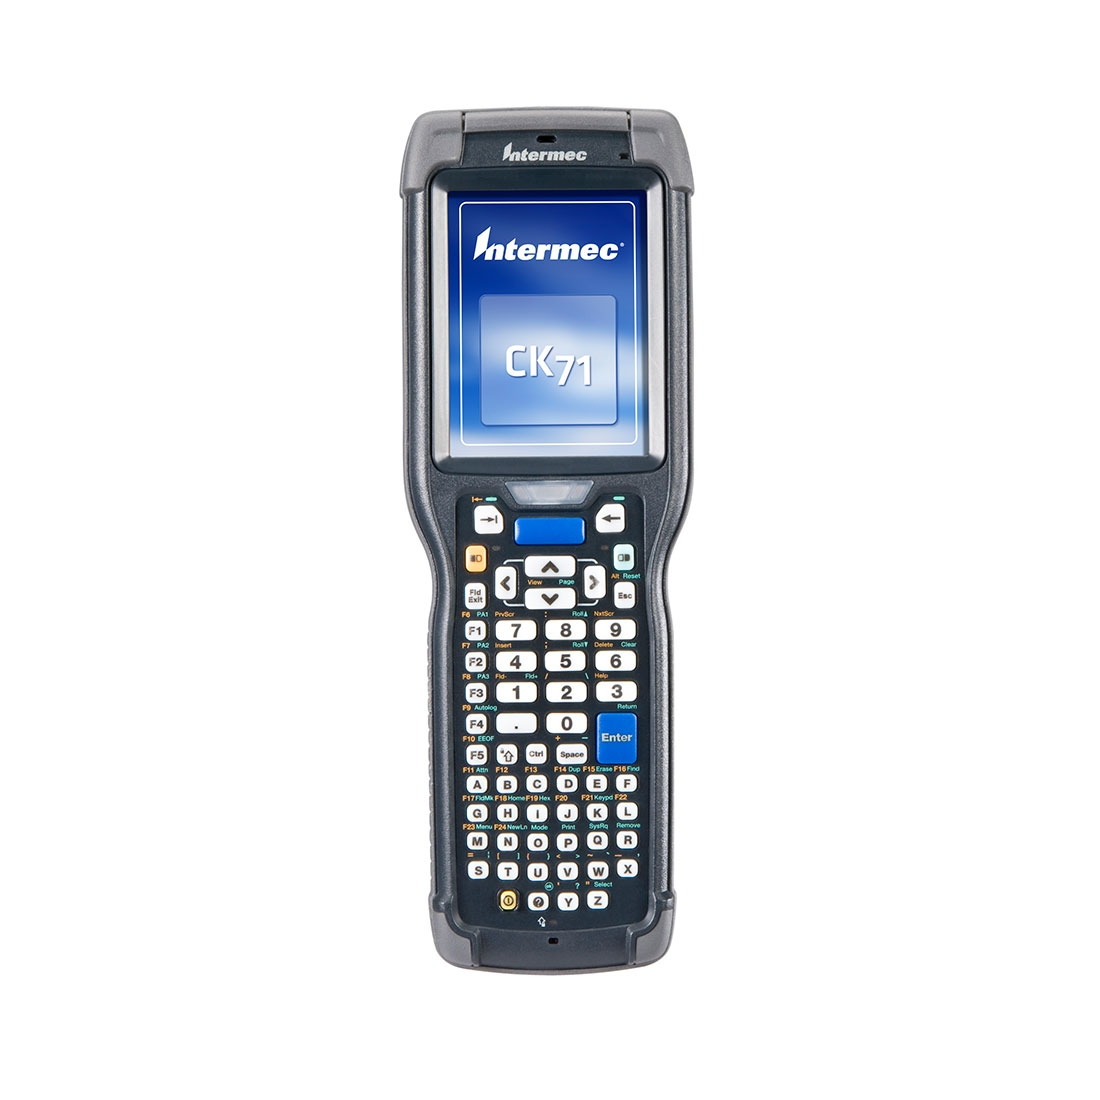 intermec-ck71-mobile-computer